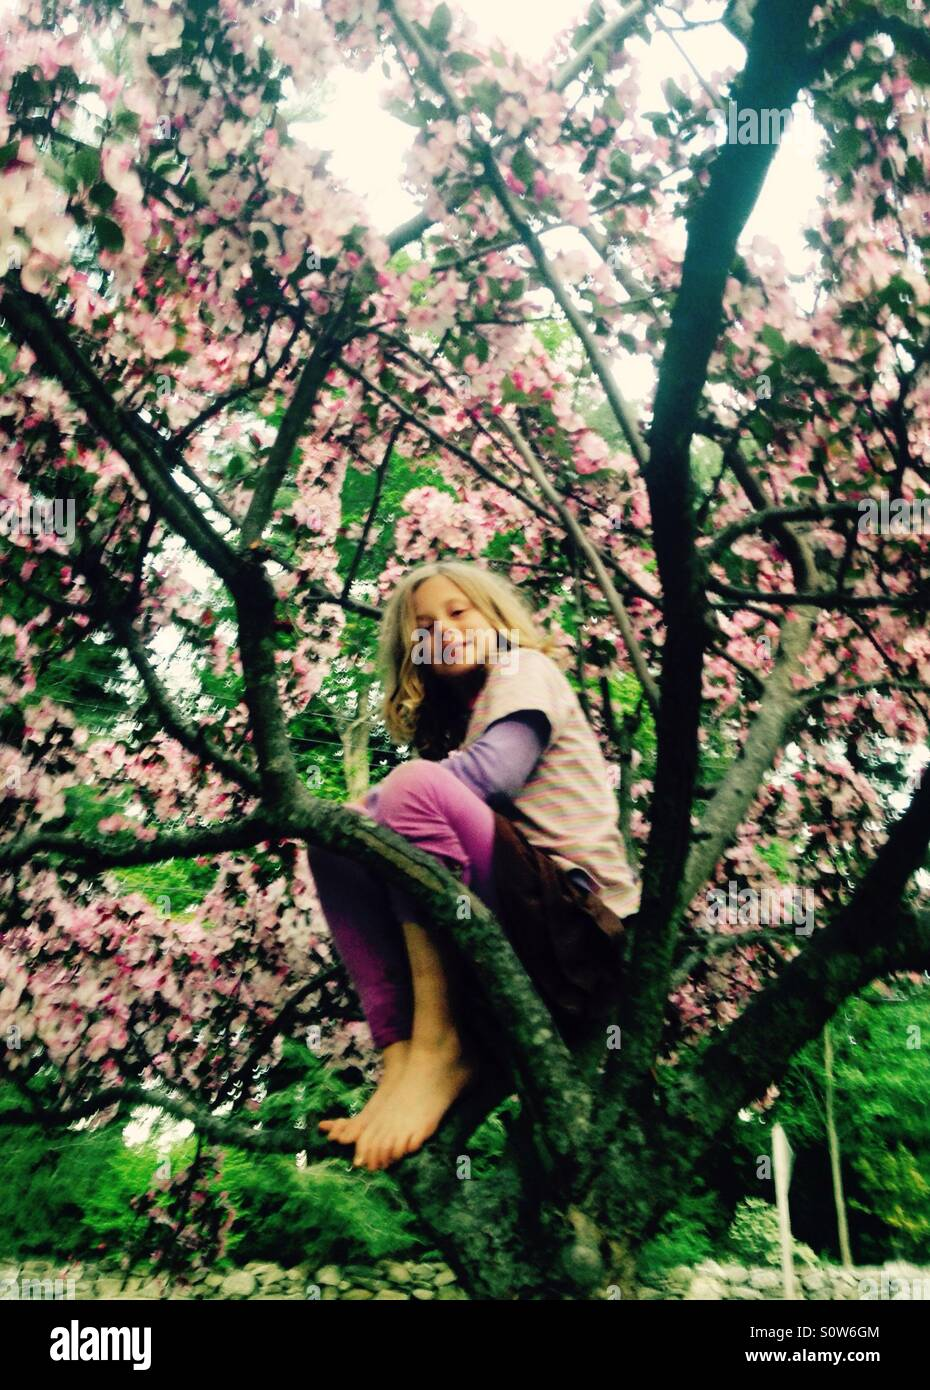 Girl climbs blooming ornamental cherry tree in spring - Stock Image